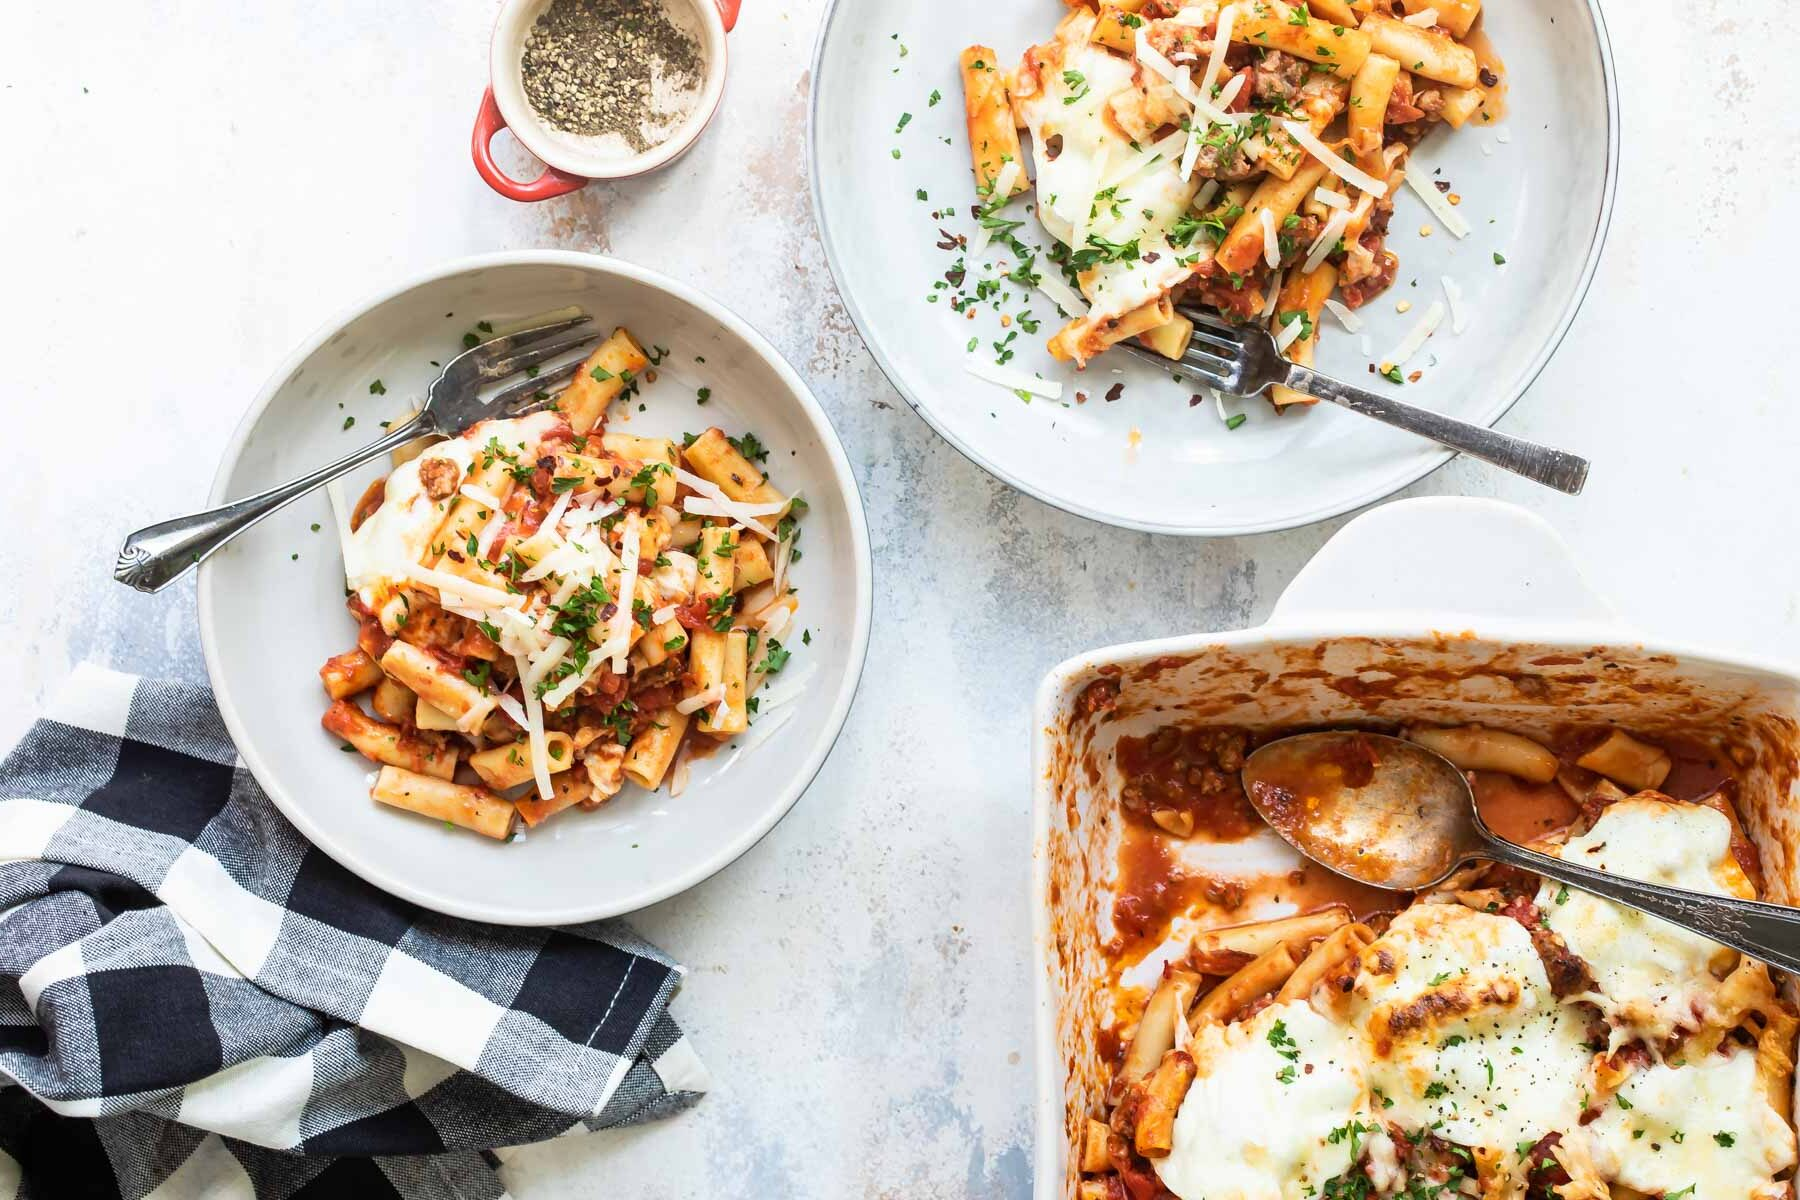 Two plates of baked ziti next to a pan of baked ziti.